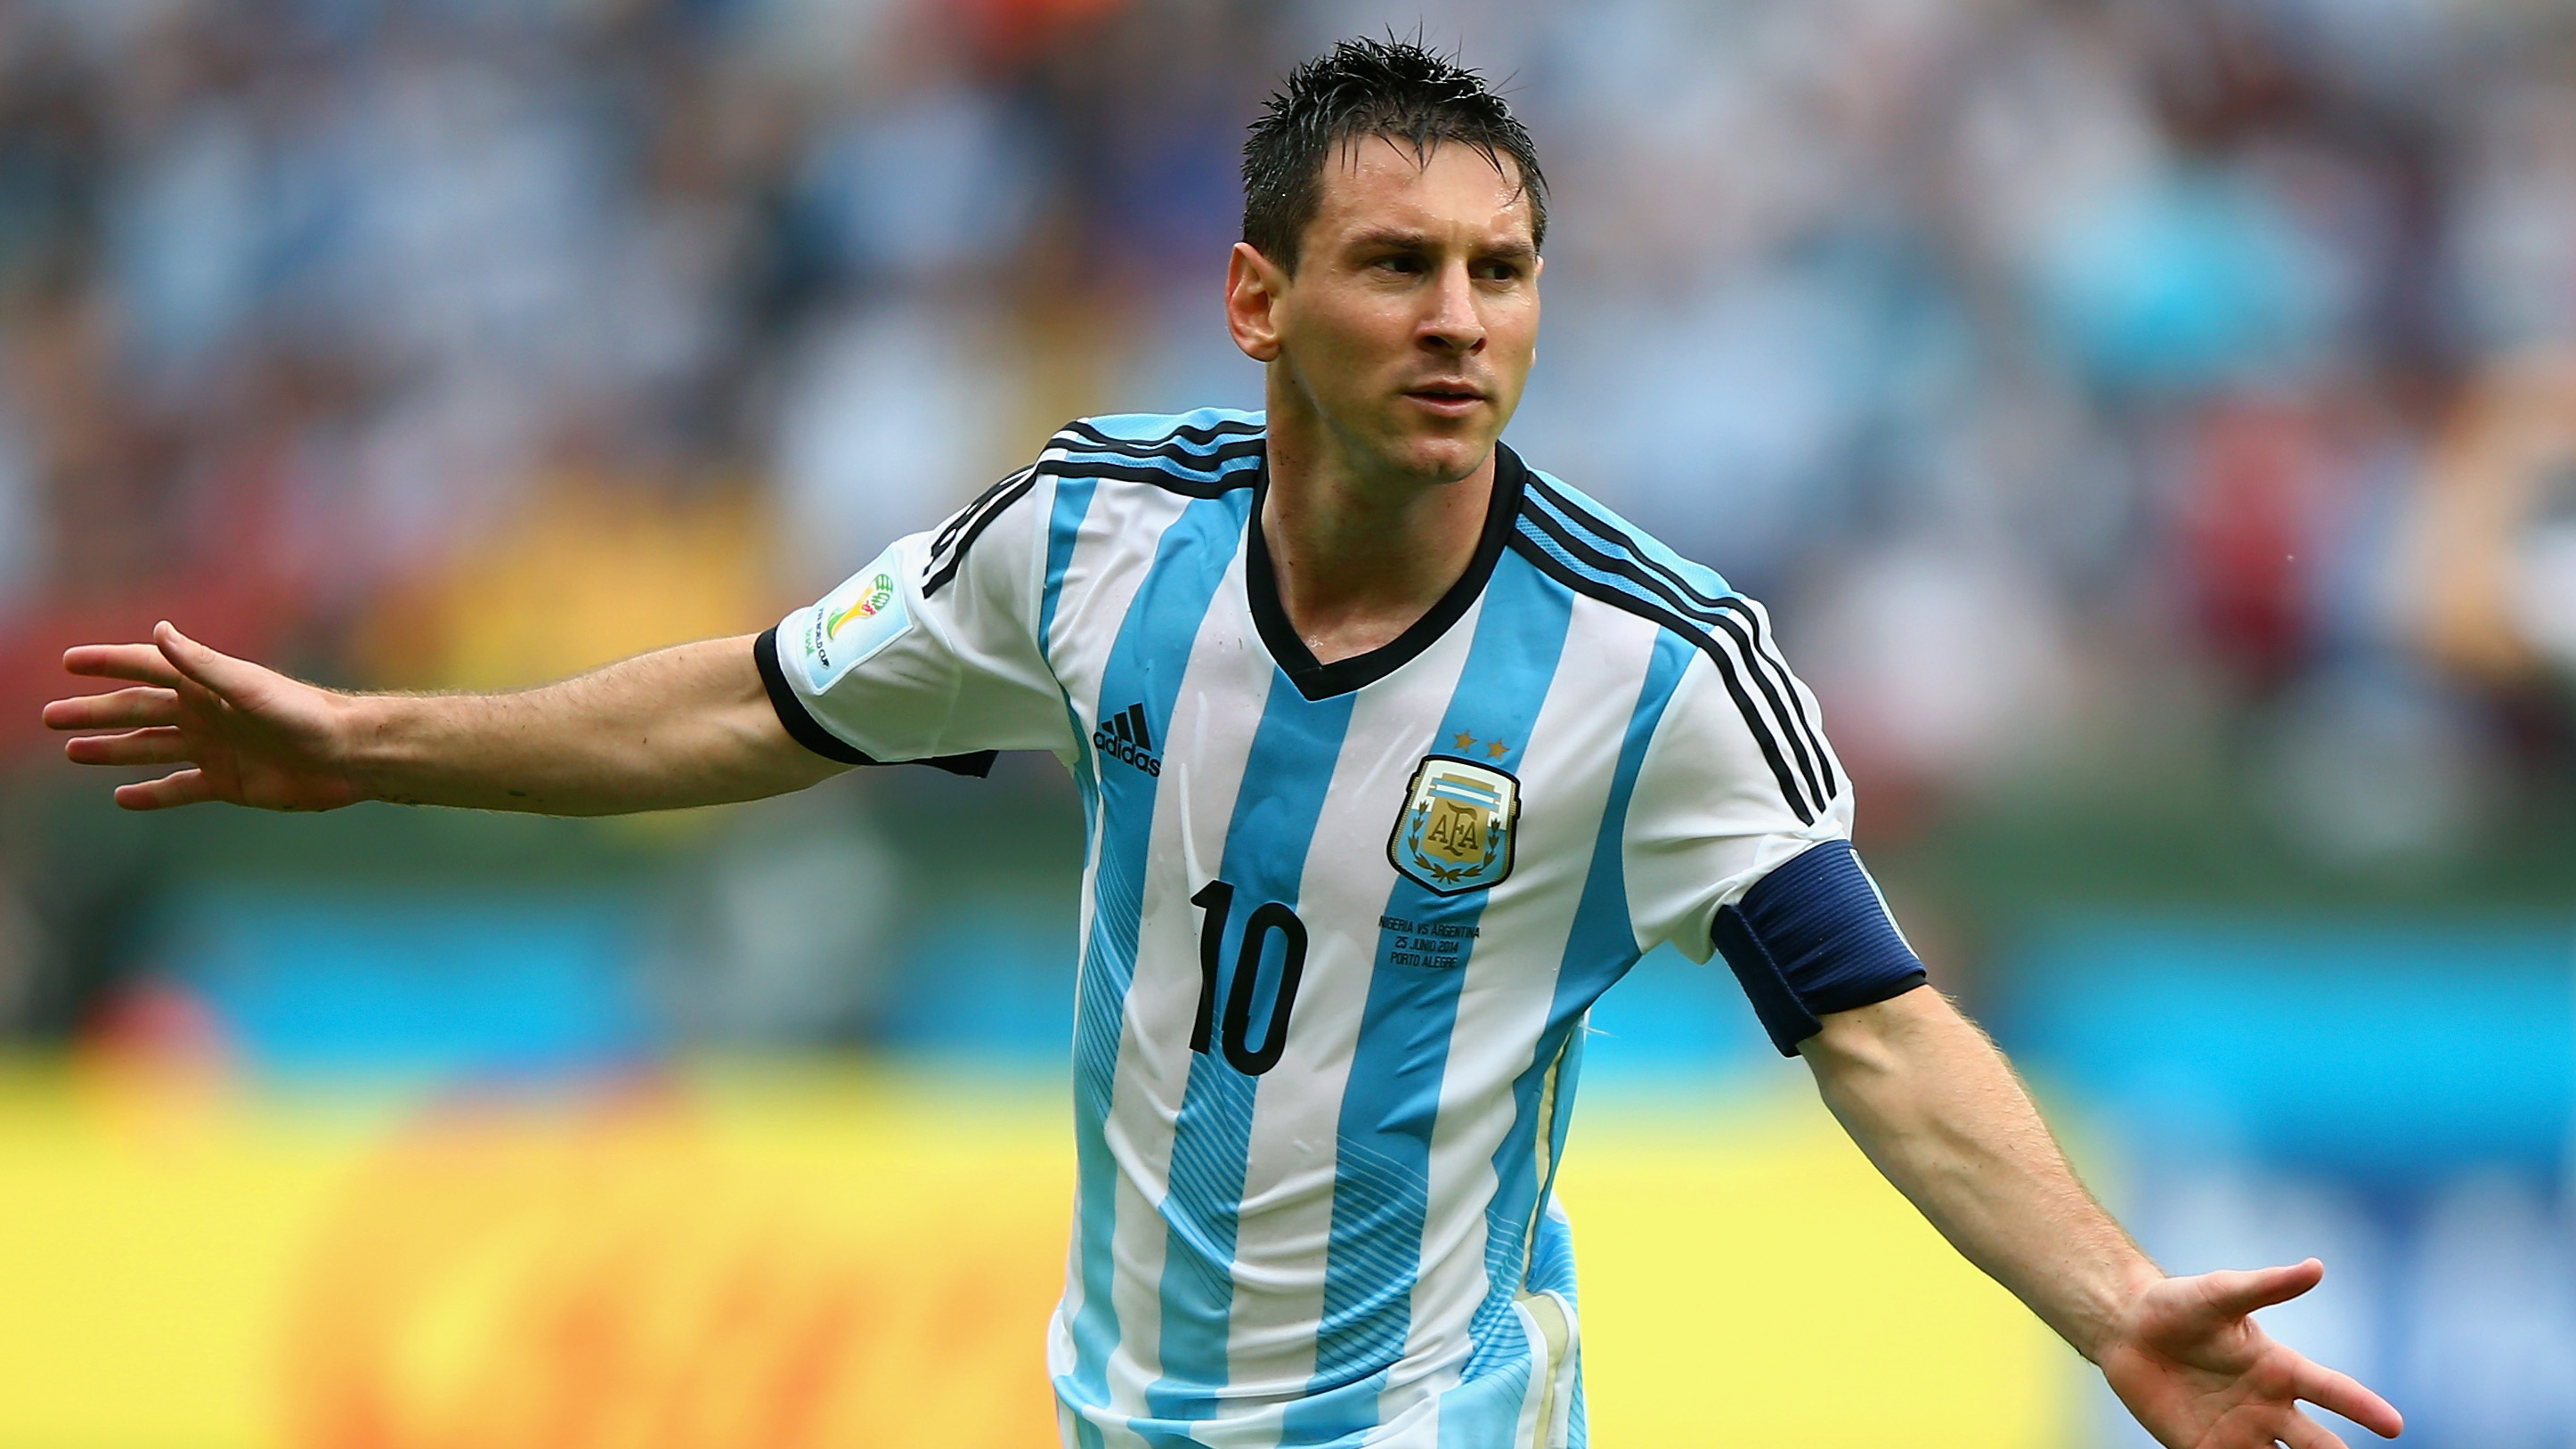 lionel-messi-argentina_tbs7o4a8wbnr1mg02